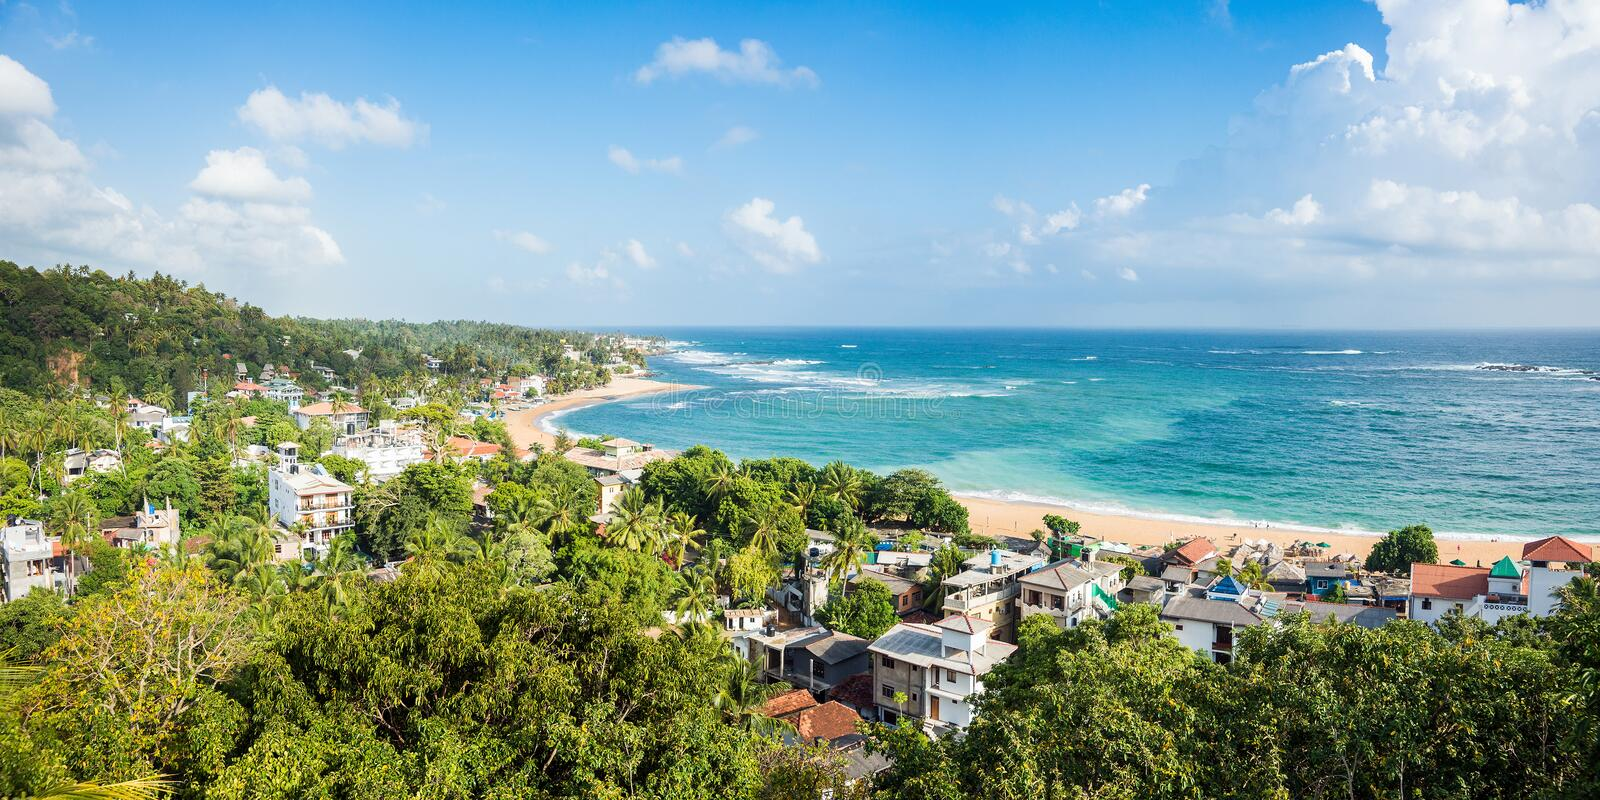 Unawatuna beach at sunny day. Panoramic view from rooftop hotel royalty free stock photo